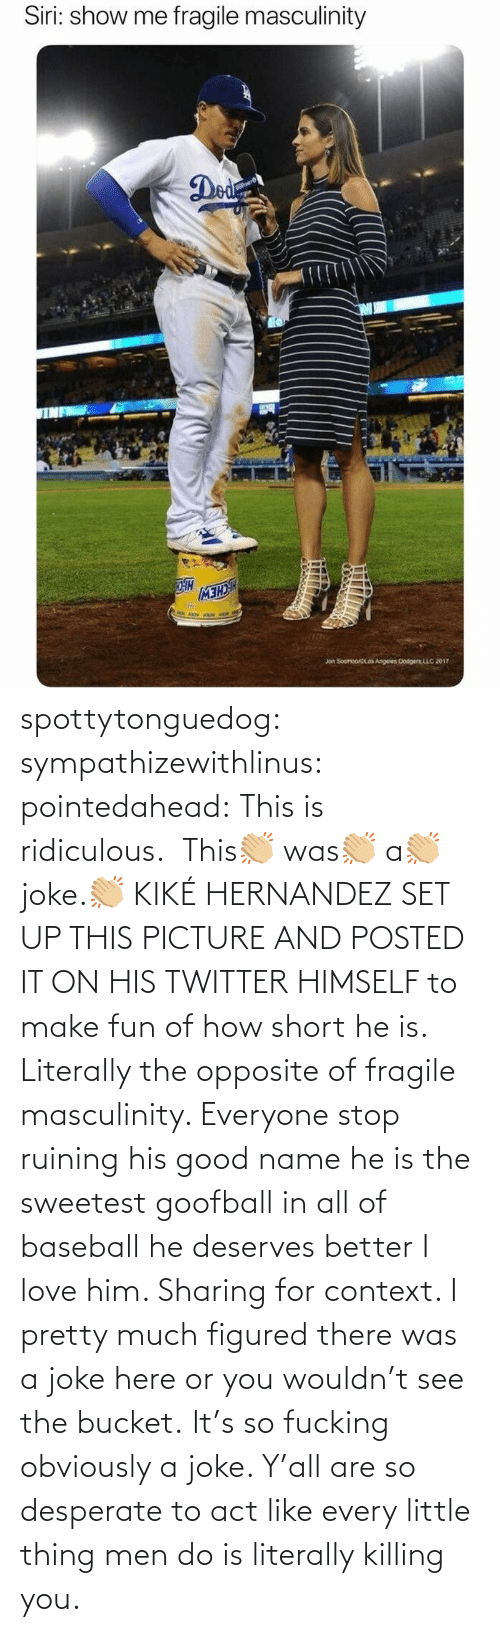 ridiculous: spottytonguedog:  sympathizewithlinus:   pointedahead: This is ridiculous.  This👏🏼 was👏🏼 a👏🏼 joke.👏🏼 KIKÉ HERNANDEZ SET UP THIS PICTURE AND POSTED IT ON HIS TWITTER HIMSELF to make fun of how short he is. Literally the opposite of fragile masculinity. Everyone stop ruining his good name he is the sweetest goofball in all of baseball he deserves better I love him.    Sharing for context. I pretty much figured there was a joke here or you wouldn't see the bucket.    It's so fucking obviously a joke. Y'all are so desperate to act like every little thing men do is literally killing you.